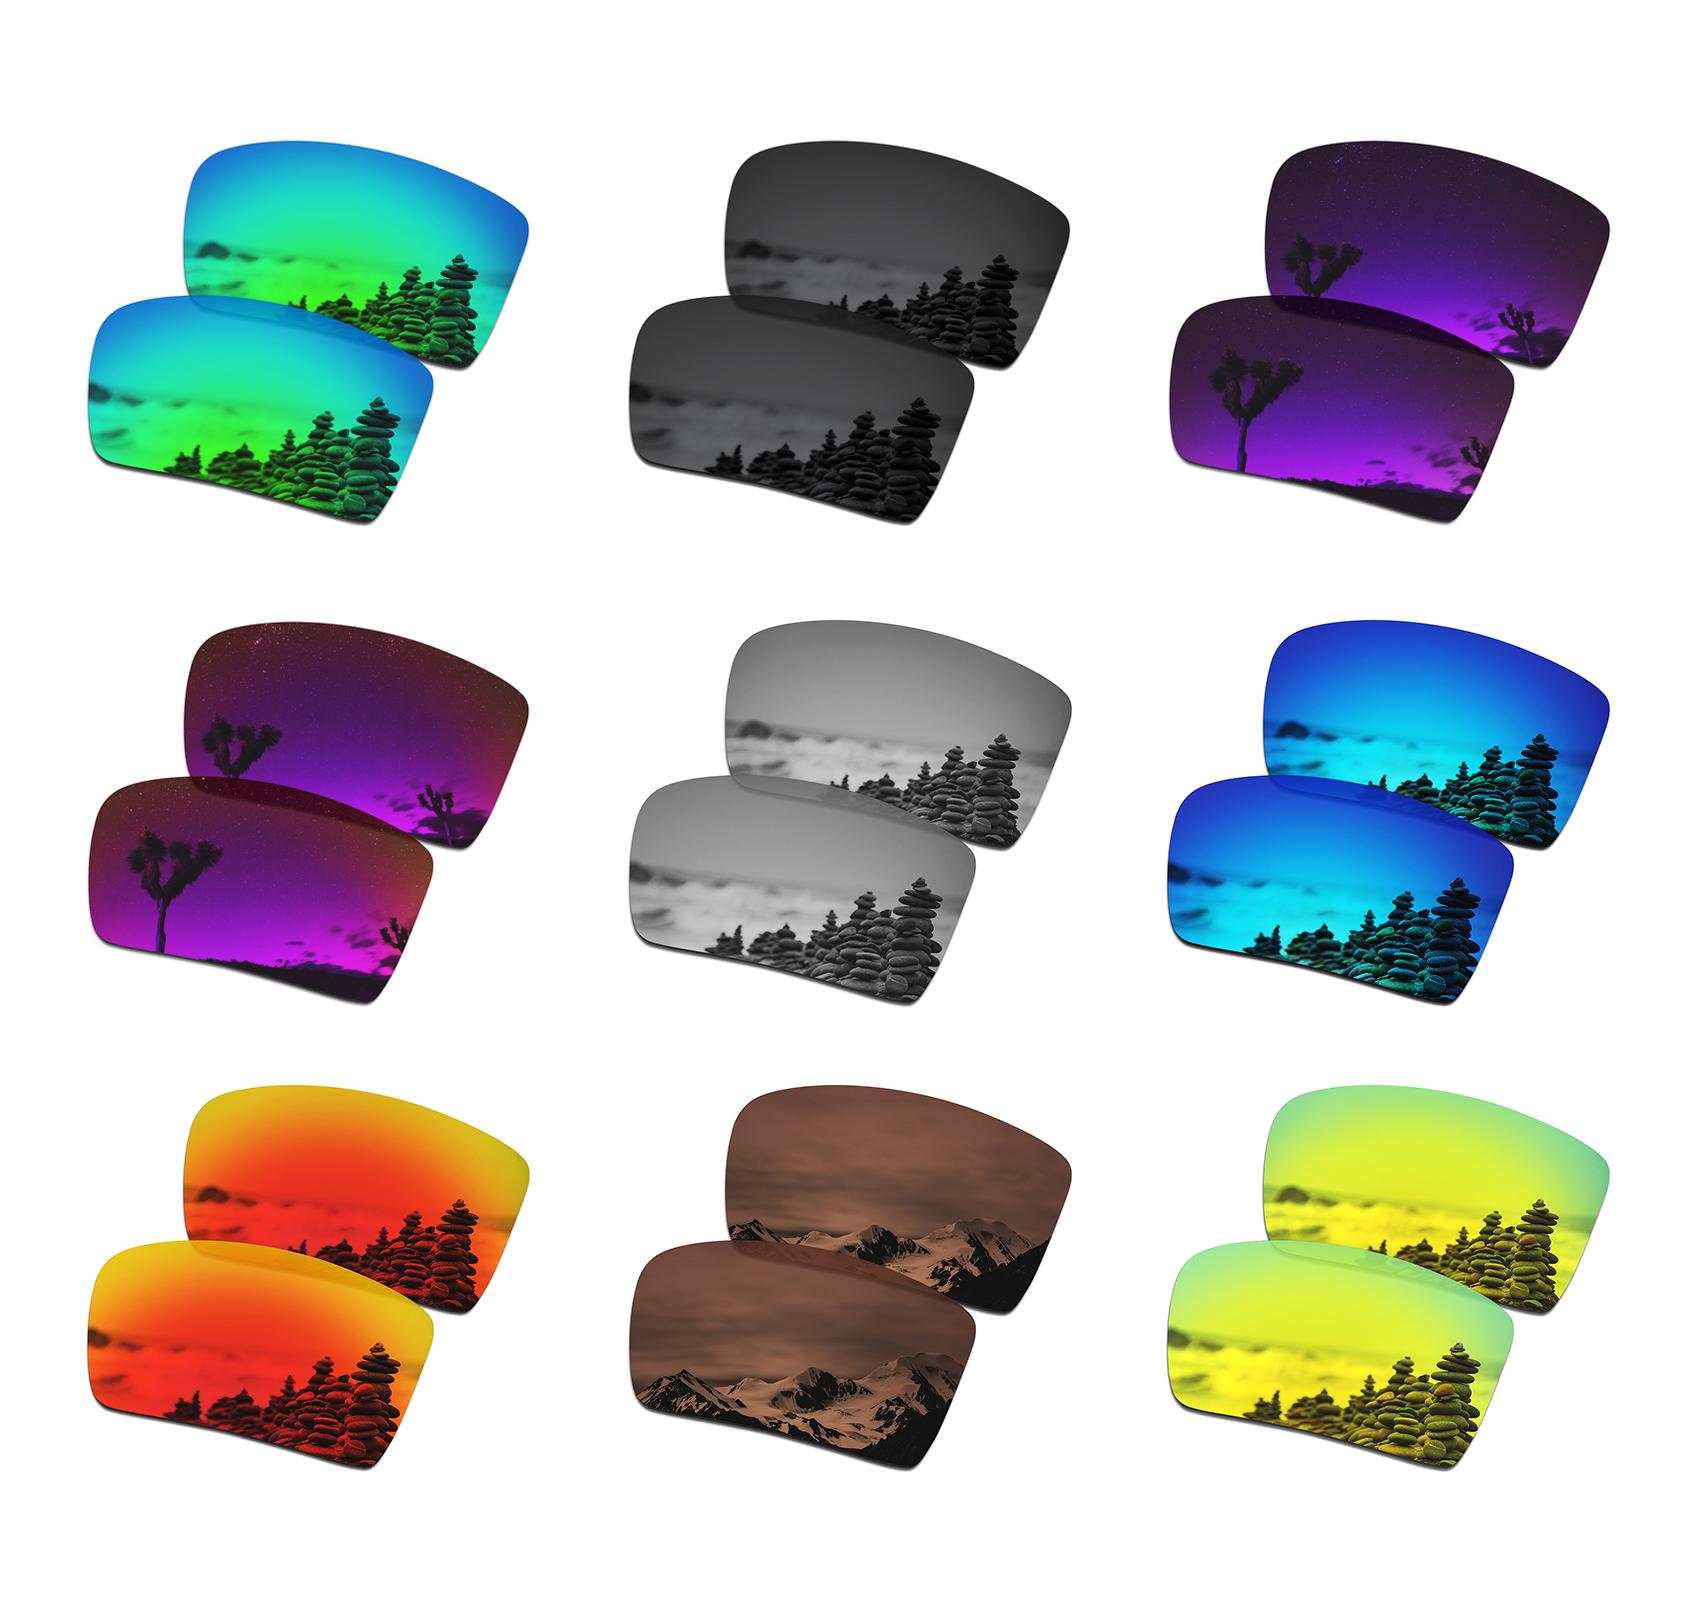 SmartVLT Polarized Replacement Lenses For Oakley Eyepatch 2 Sunglasses - Multiple Options